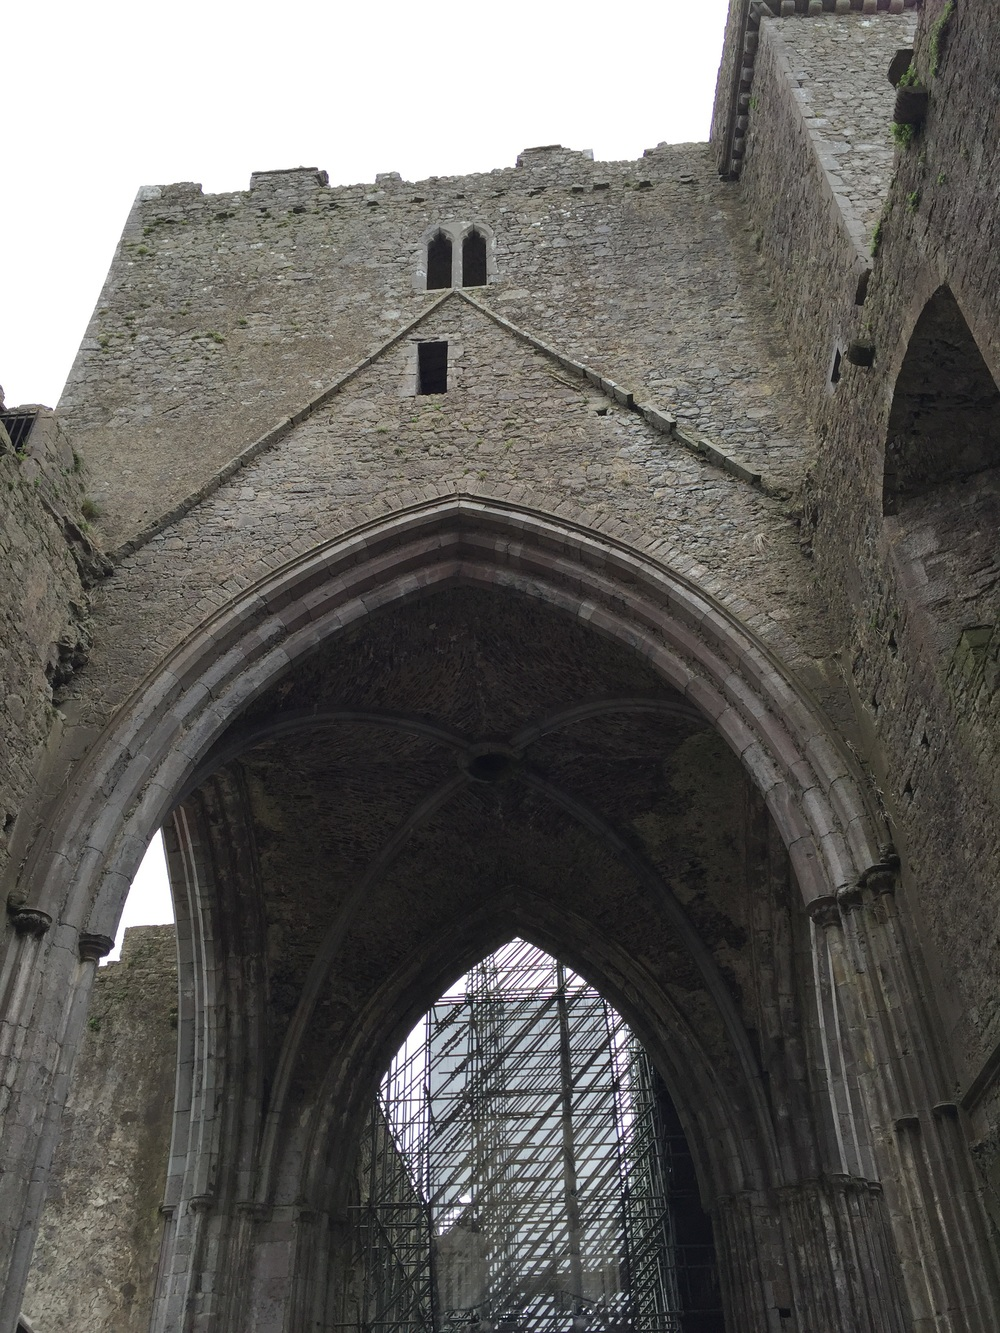 You can see the scaffolding through the archway...